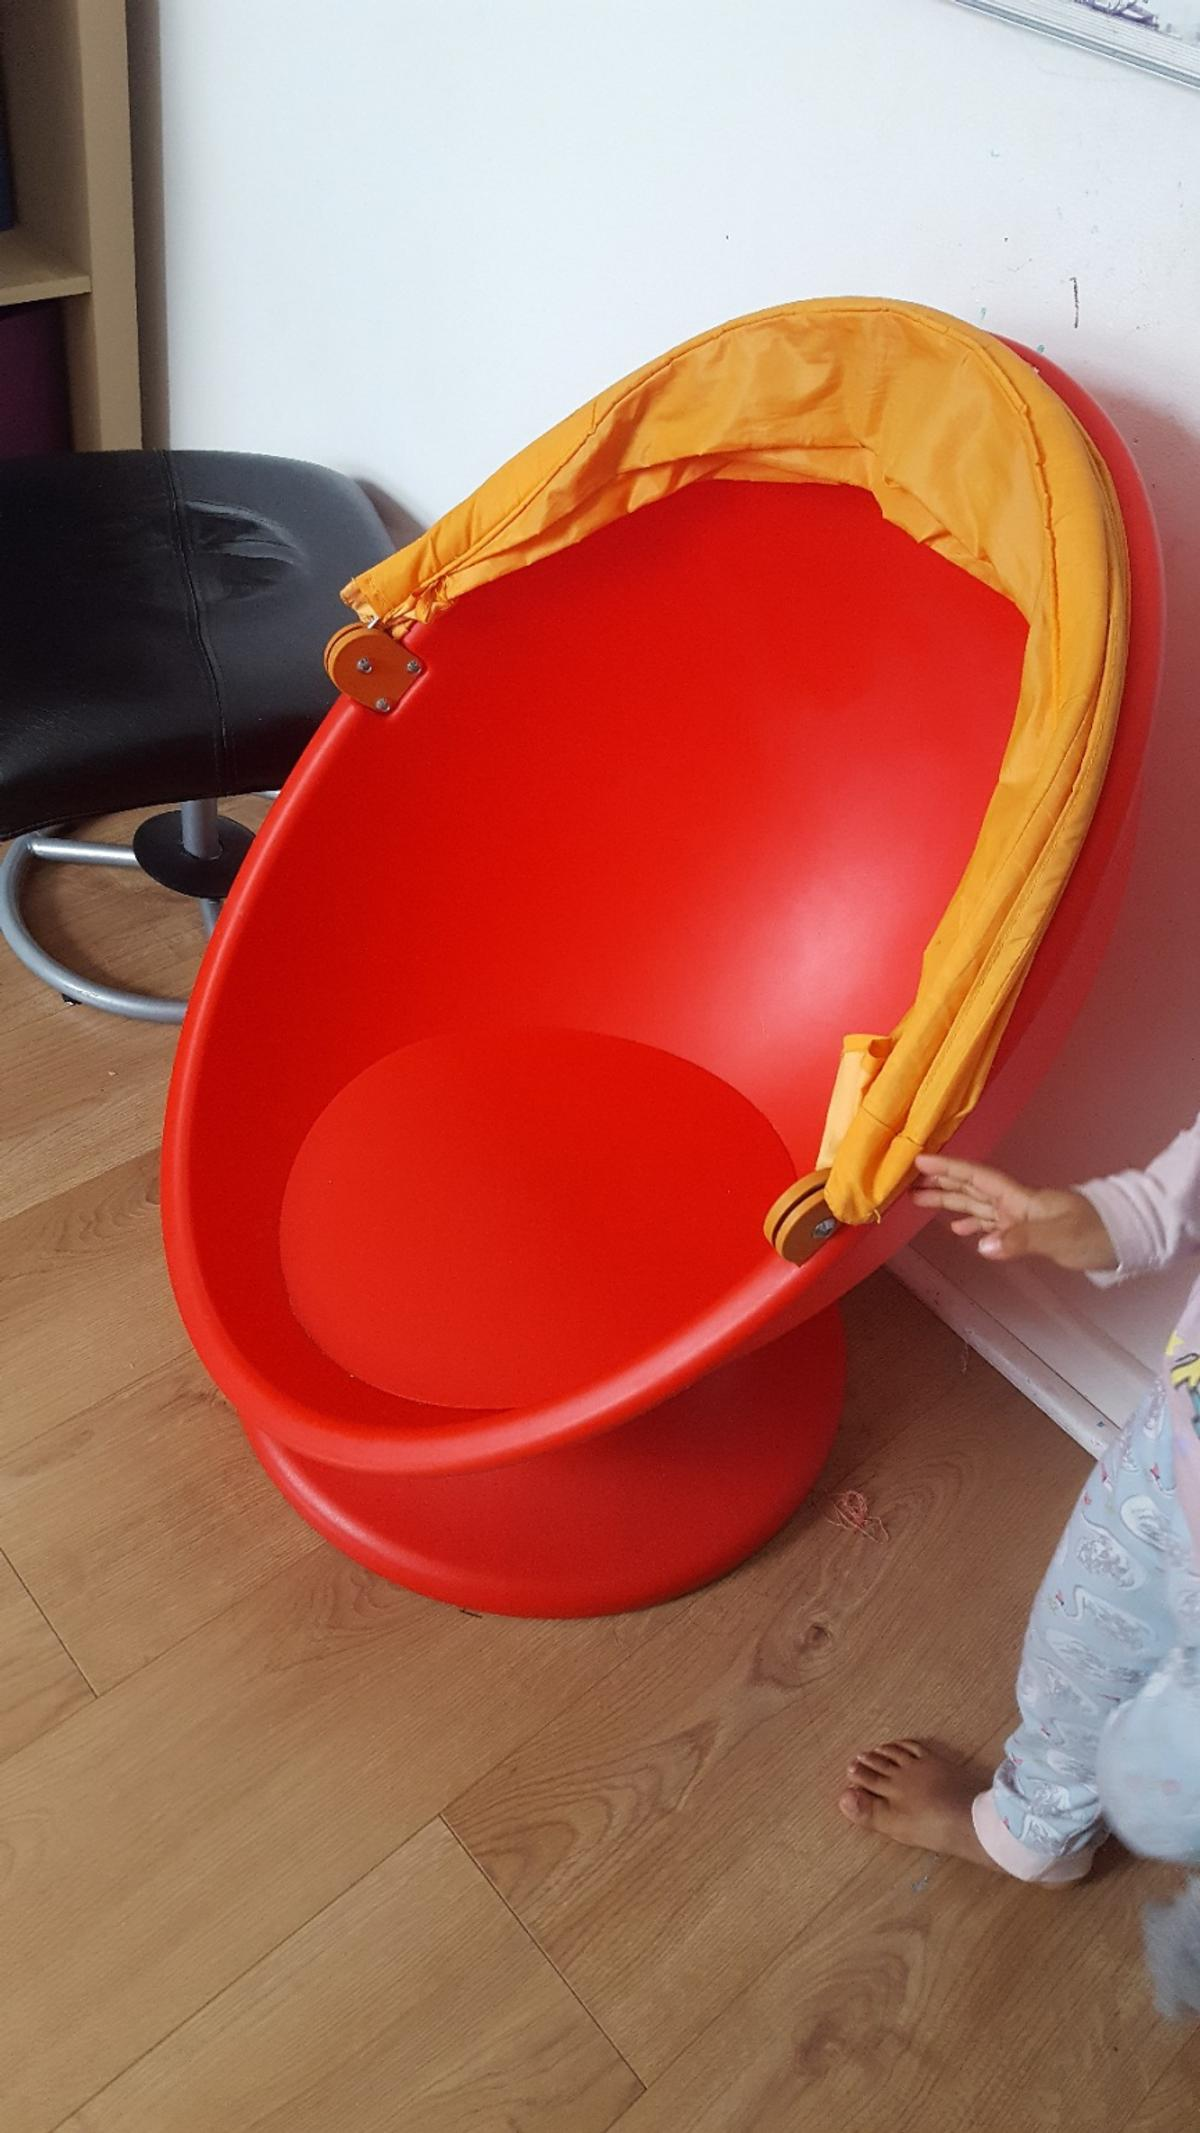 Shpock London Ikea For £20 In Egg Sale Chair 00 E13 xtrChsdQ